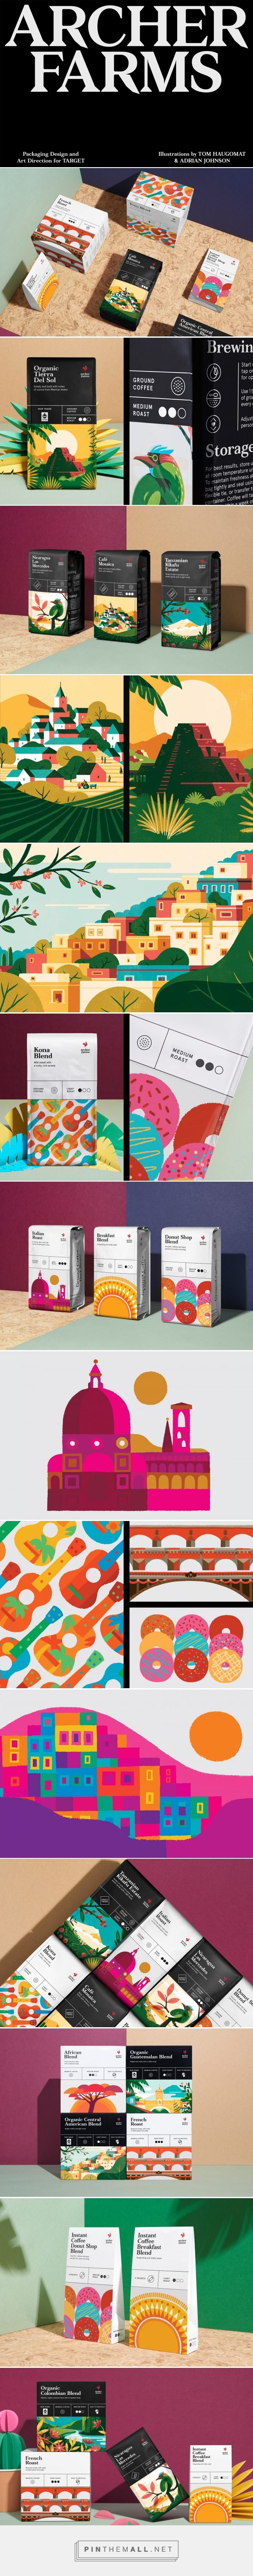 Archer Farms Coffee packaging design by Collins - http://www.packagingoftheworld.com/2017/01/archer-farms-coffee.html